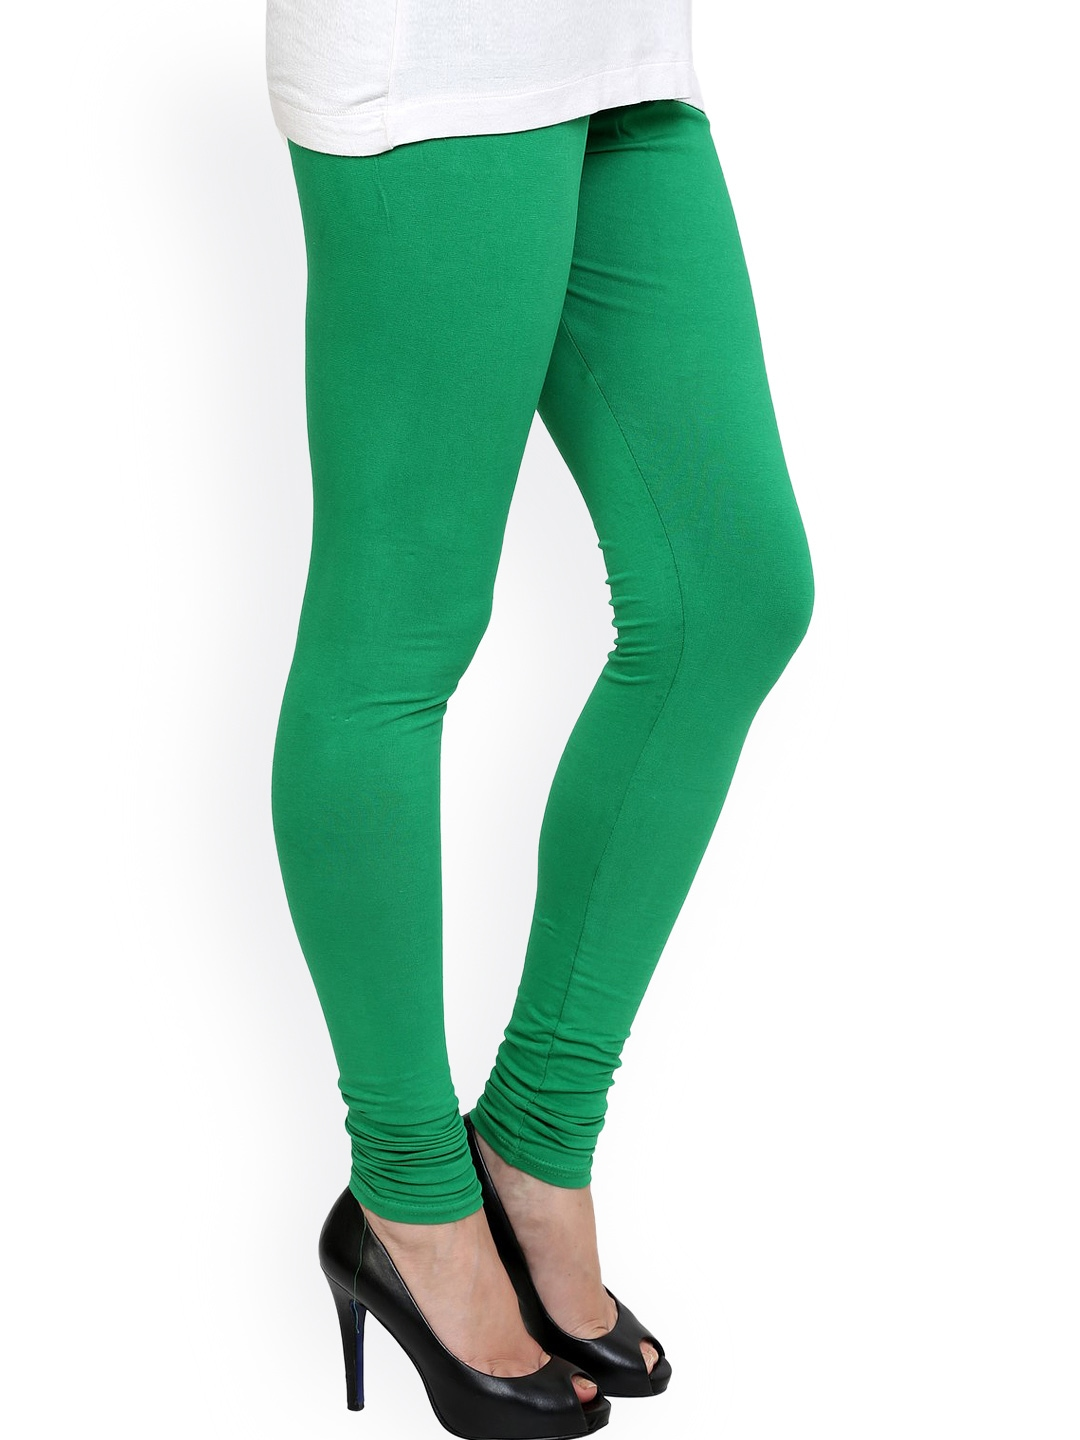 Leggings. Leggings! Enough said. They are cute, comfortable, and versatile at the same time. Leggings can be paired with almost everything and still look adorable. Reliance Trends offers a .